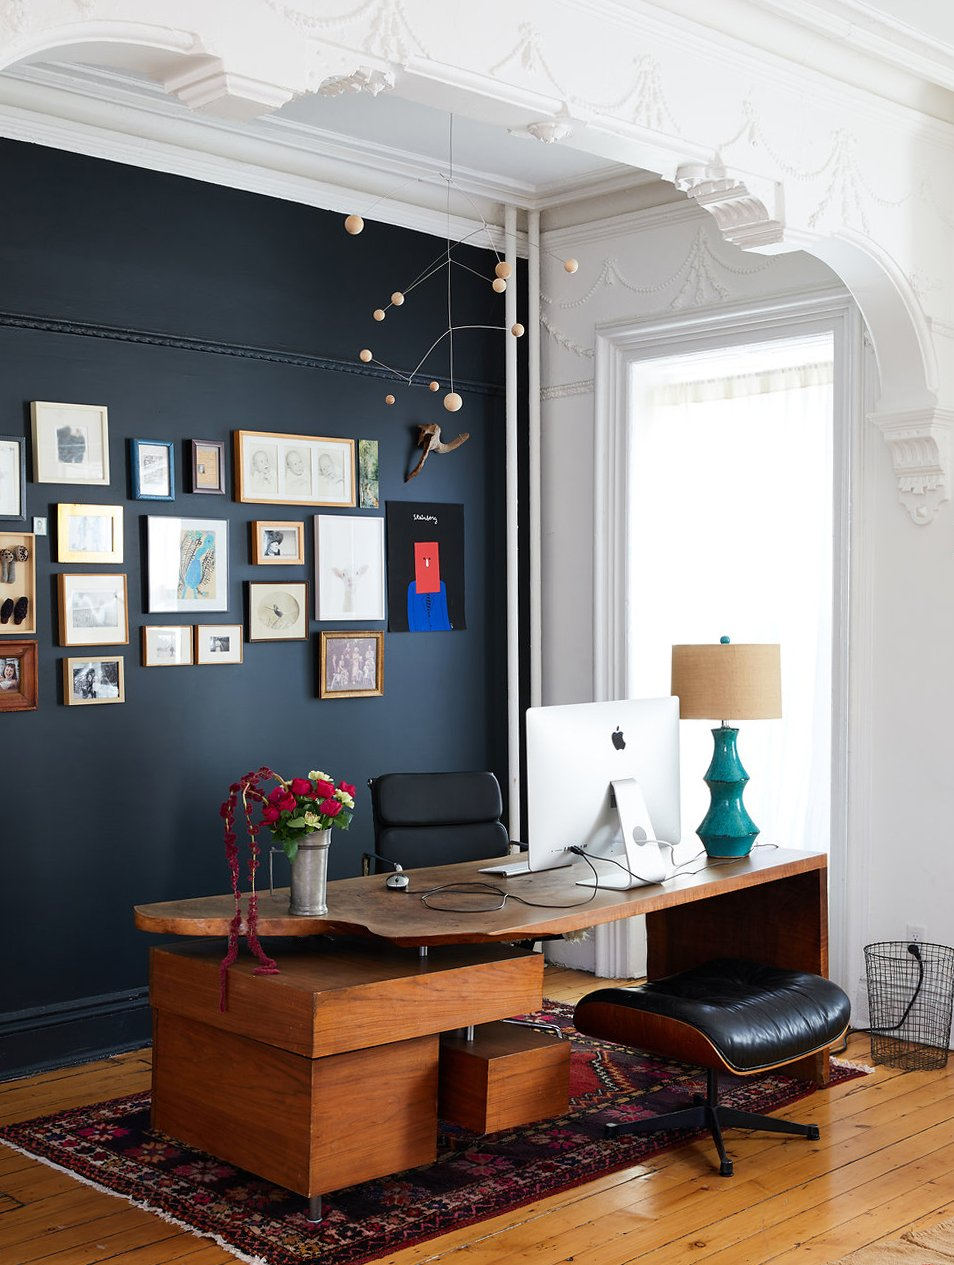 Sophie Demenge's Brooklyn Home Tour